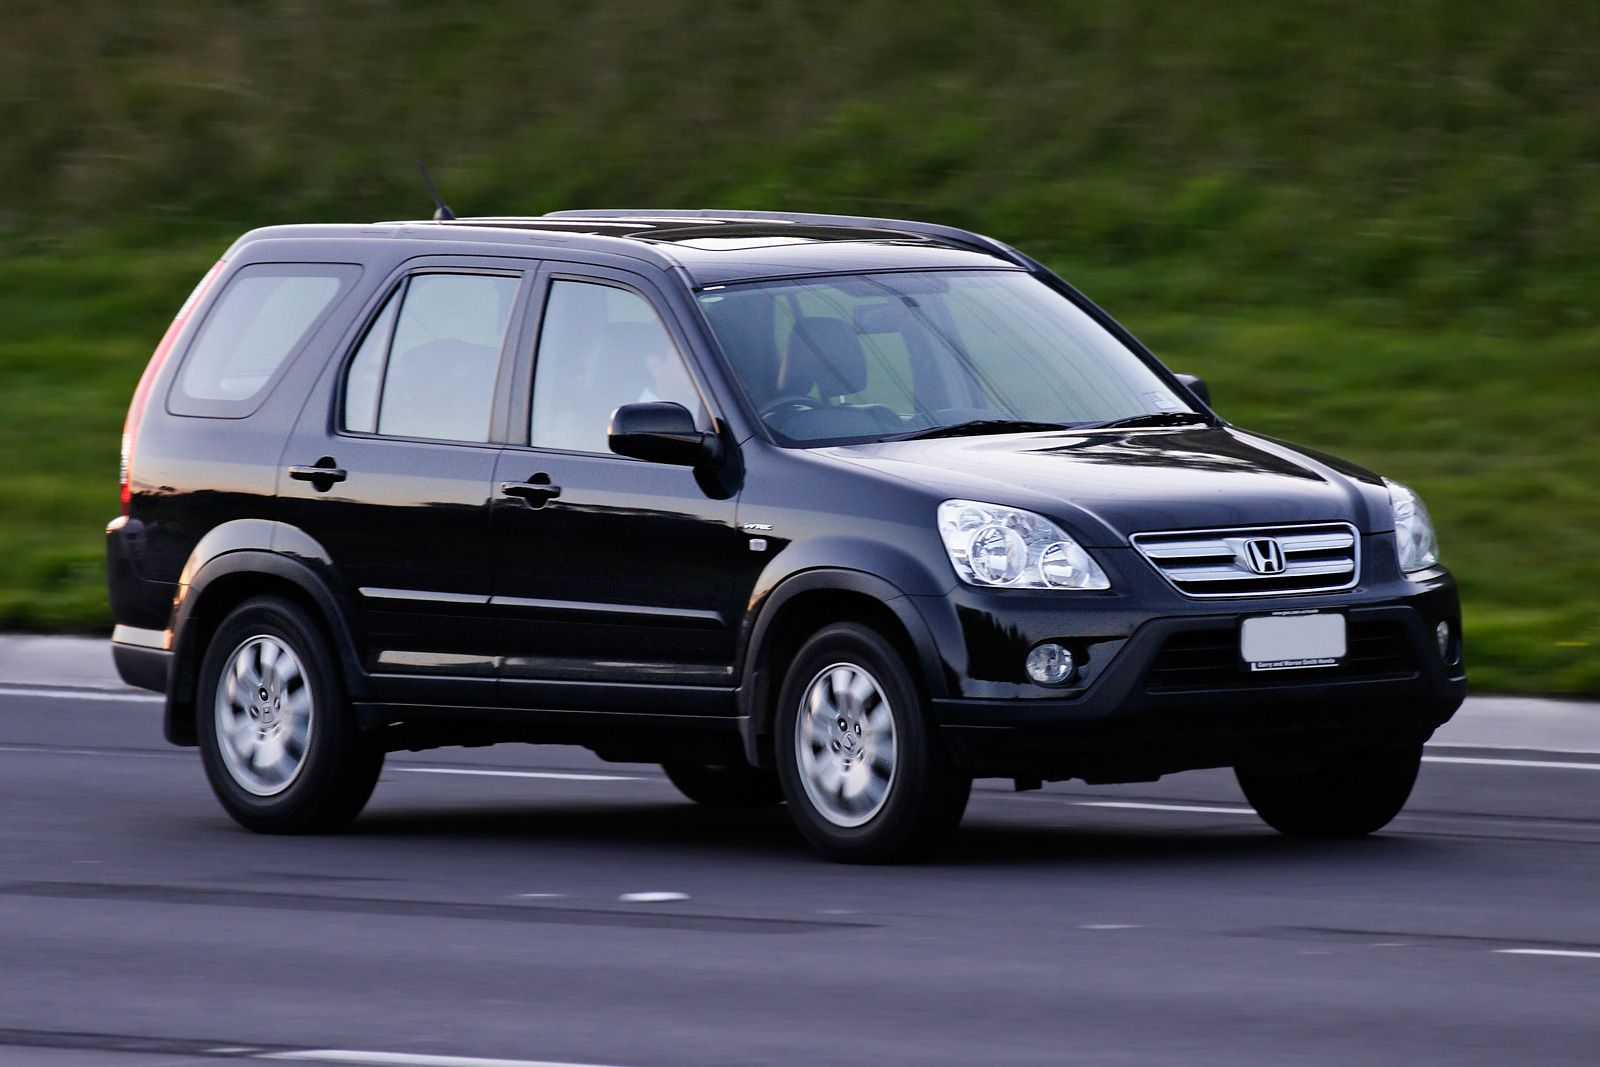 Honda CR-V wallpapers HD & Honda CR-V wallpapers HD | Honda | Pinterest | Honda cr Honda and ...